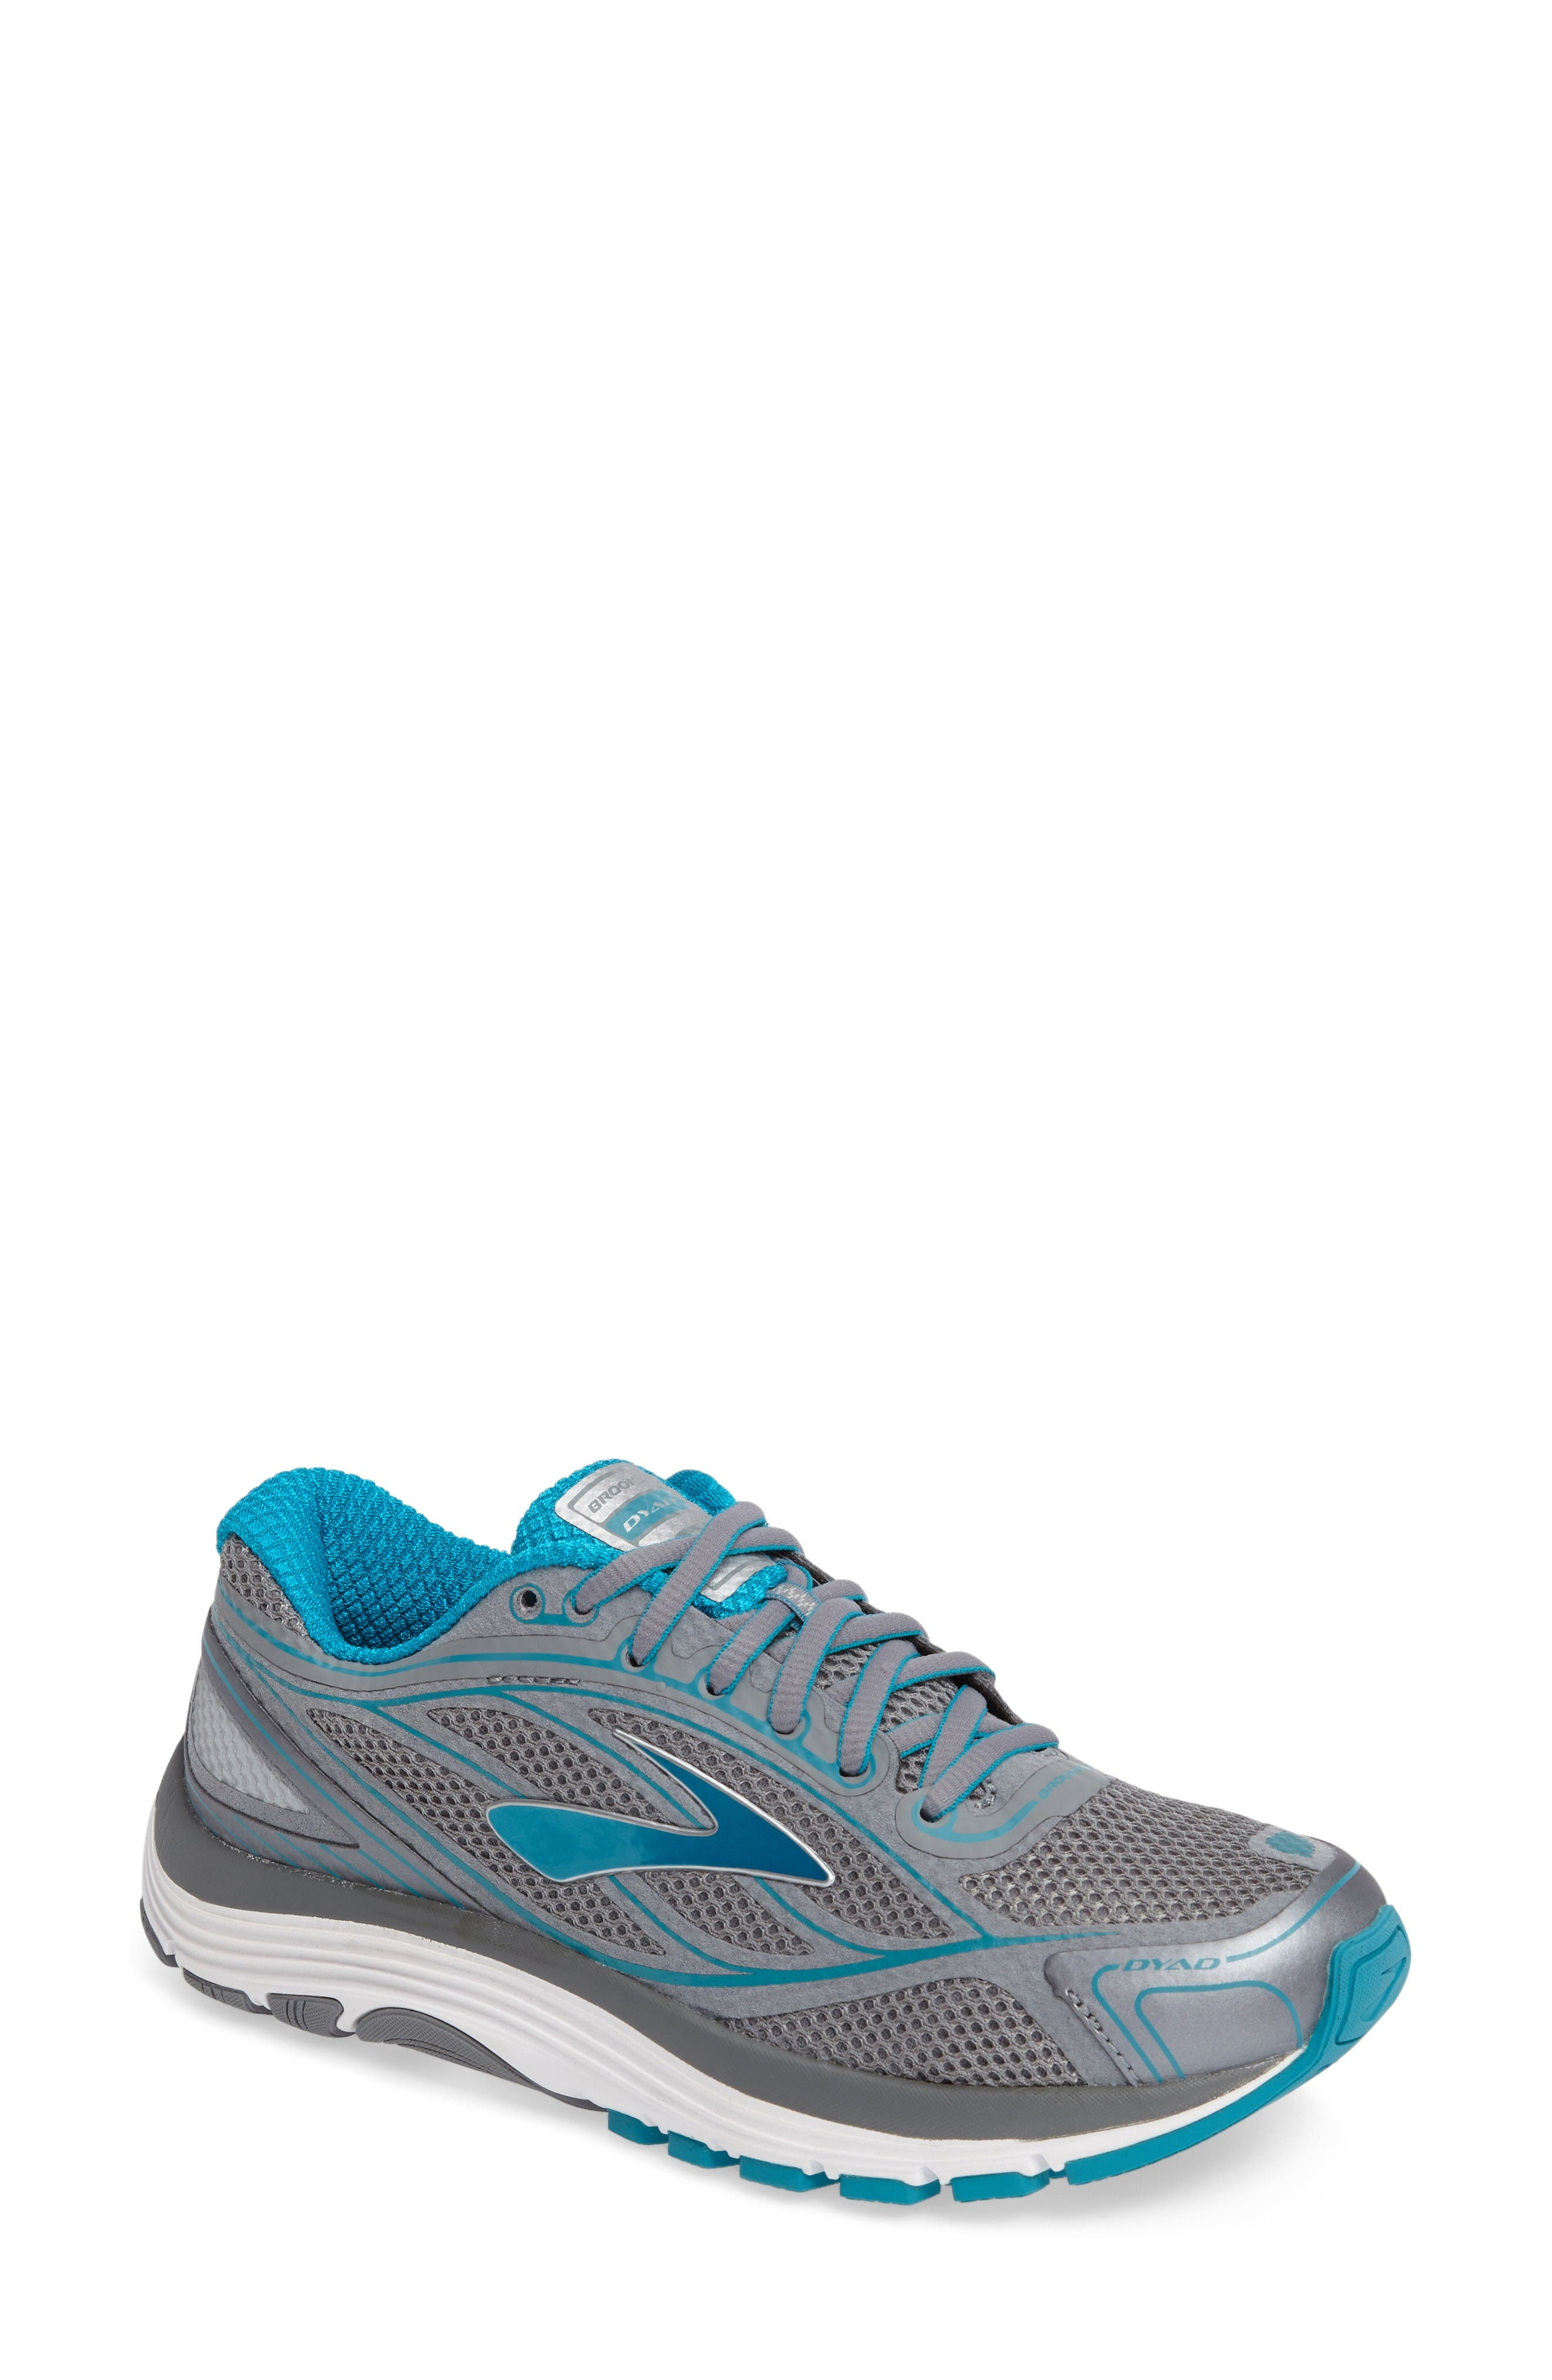 BROOKS Dyad 9 Running Shoe